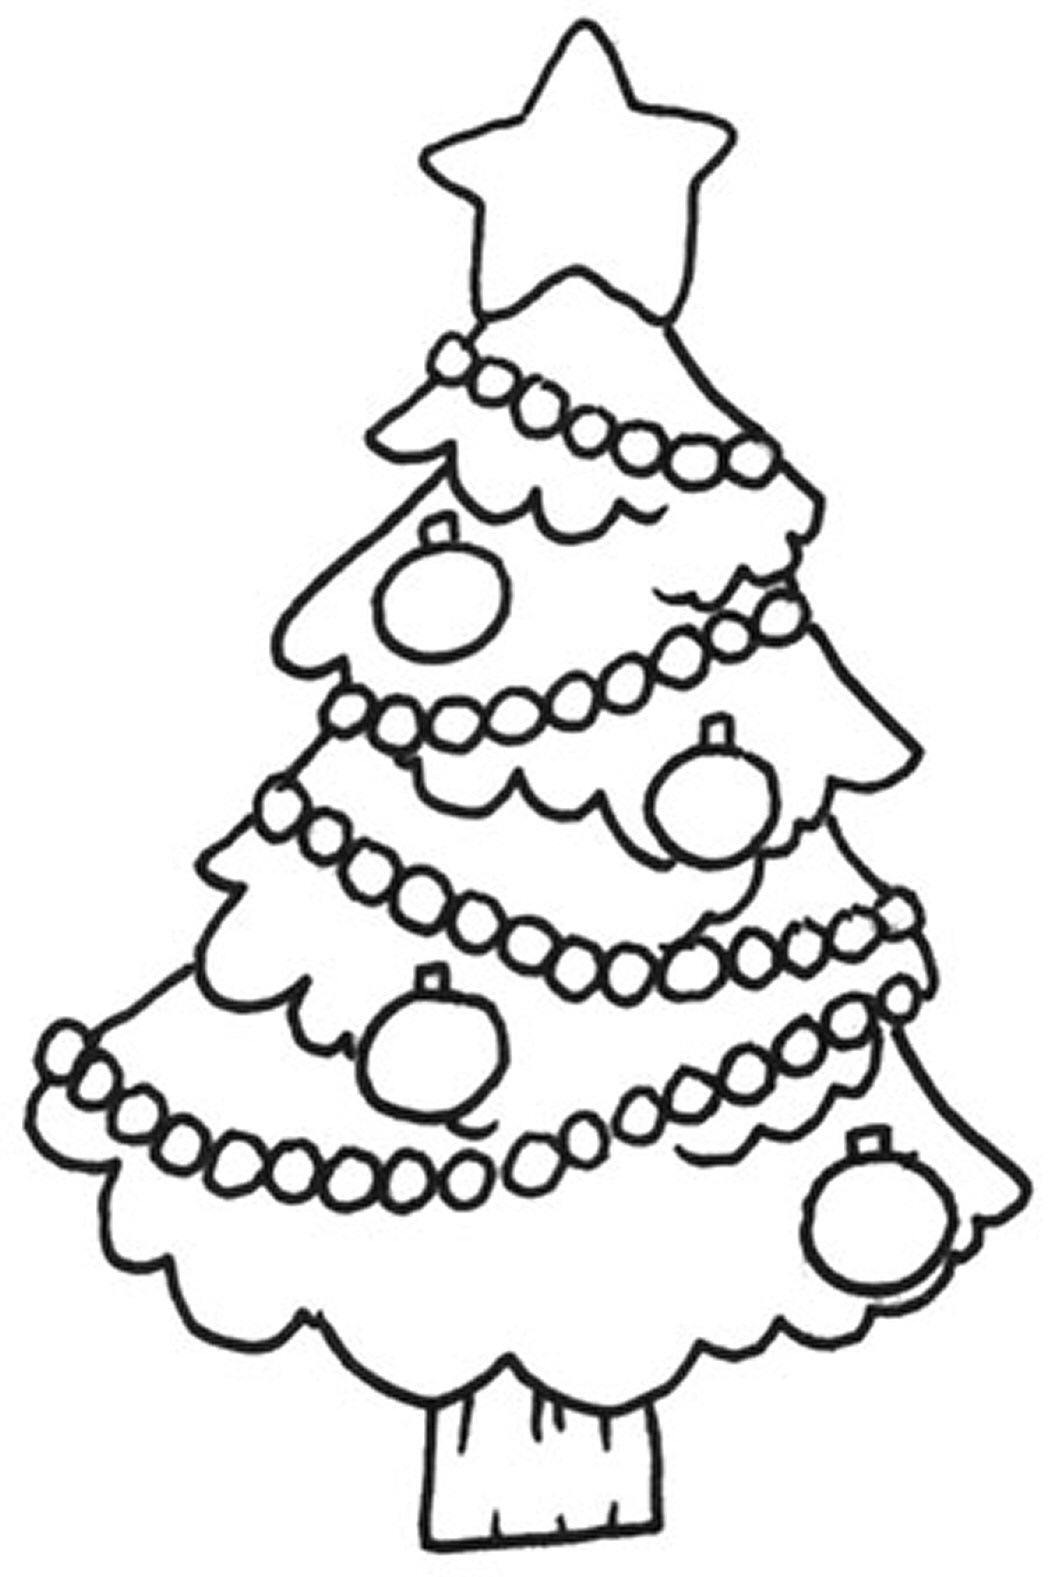 graphic relating to Printable Christmas Tree Coloring Pages called Free of charge Printable Xmas Tree Coloring Internet pages For Youngsters